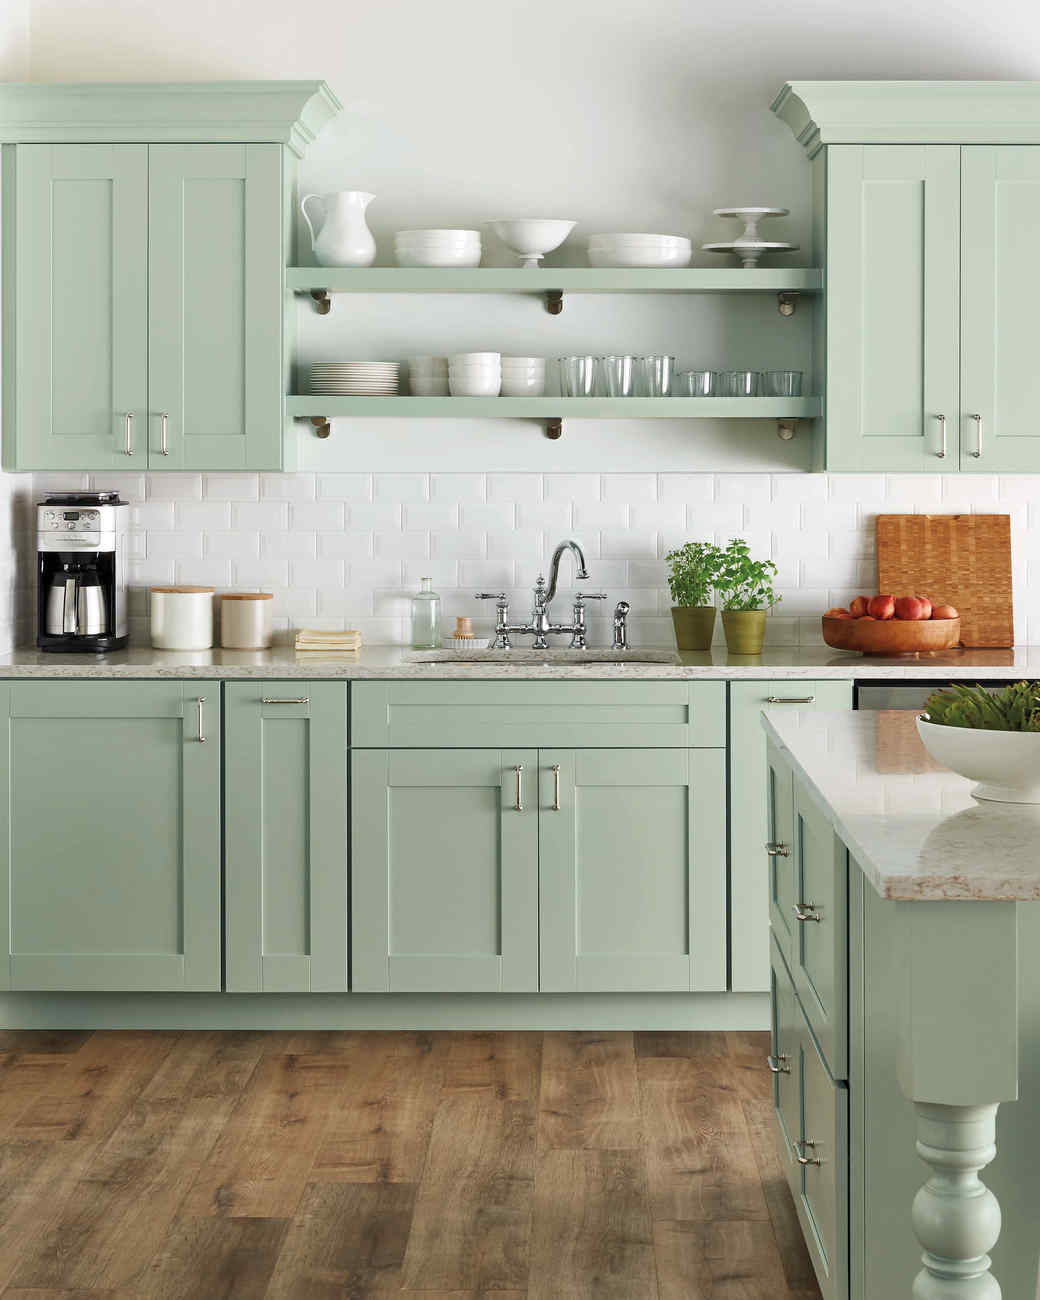 Olive And Blue Kitchen: Select Your Kitchen Style